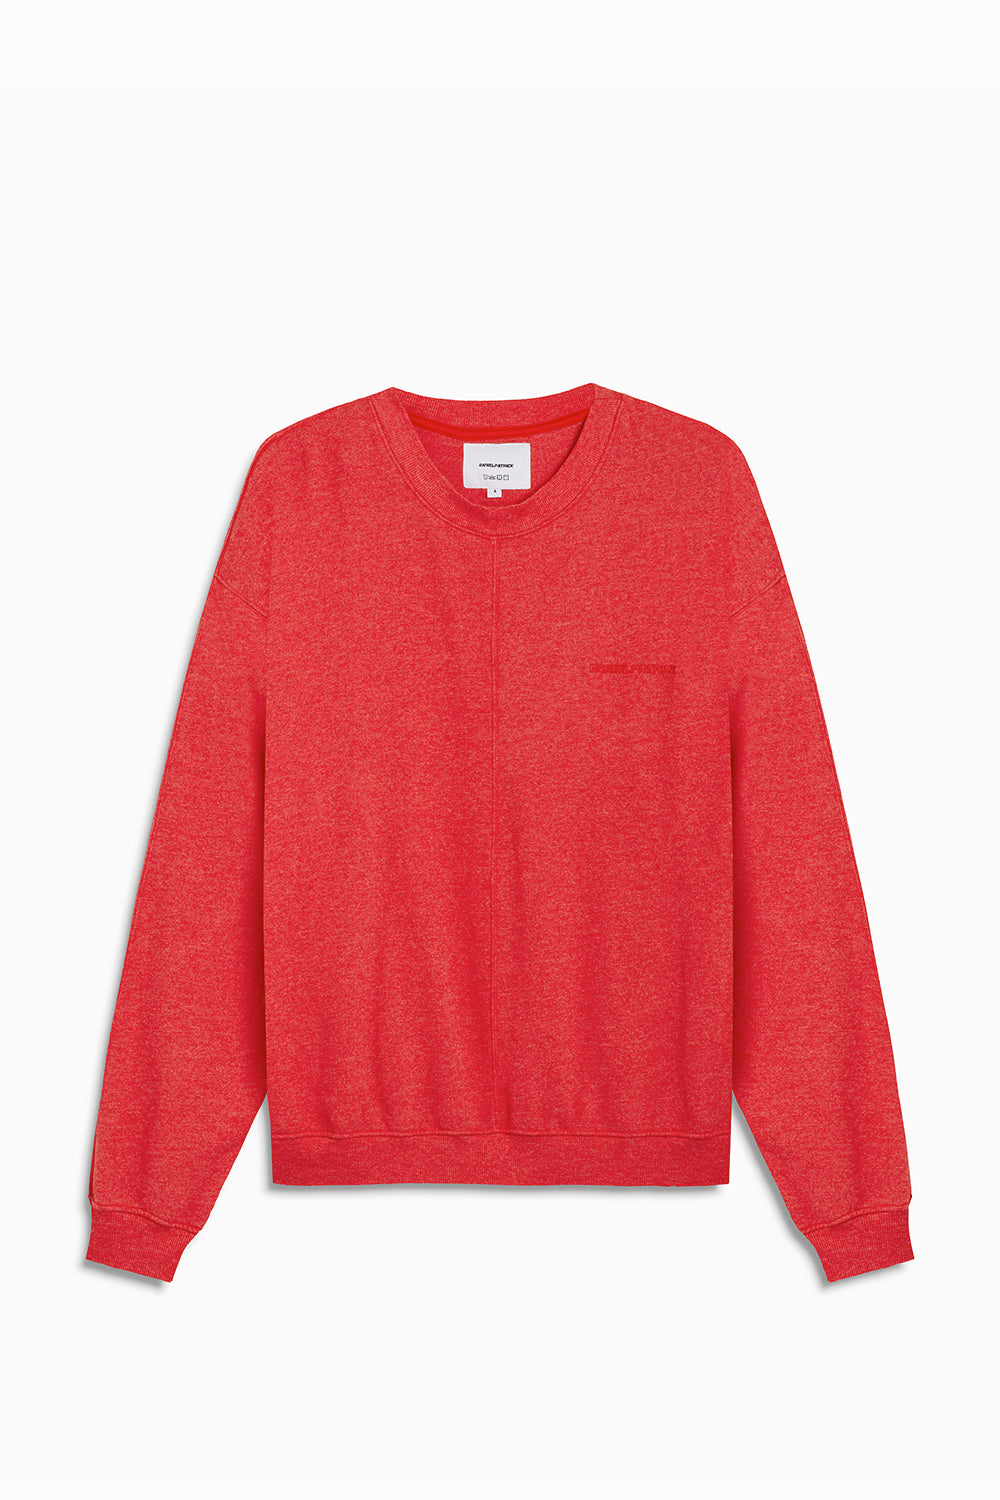 loop terry standard sweatshirt / red heather